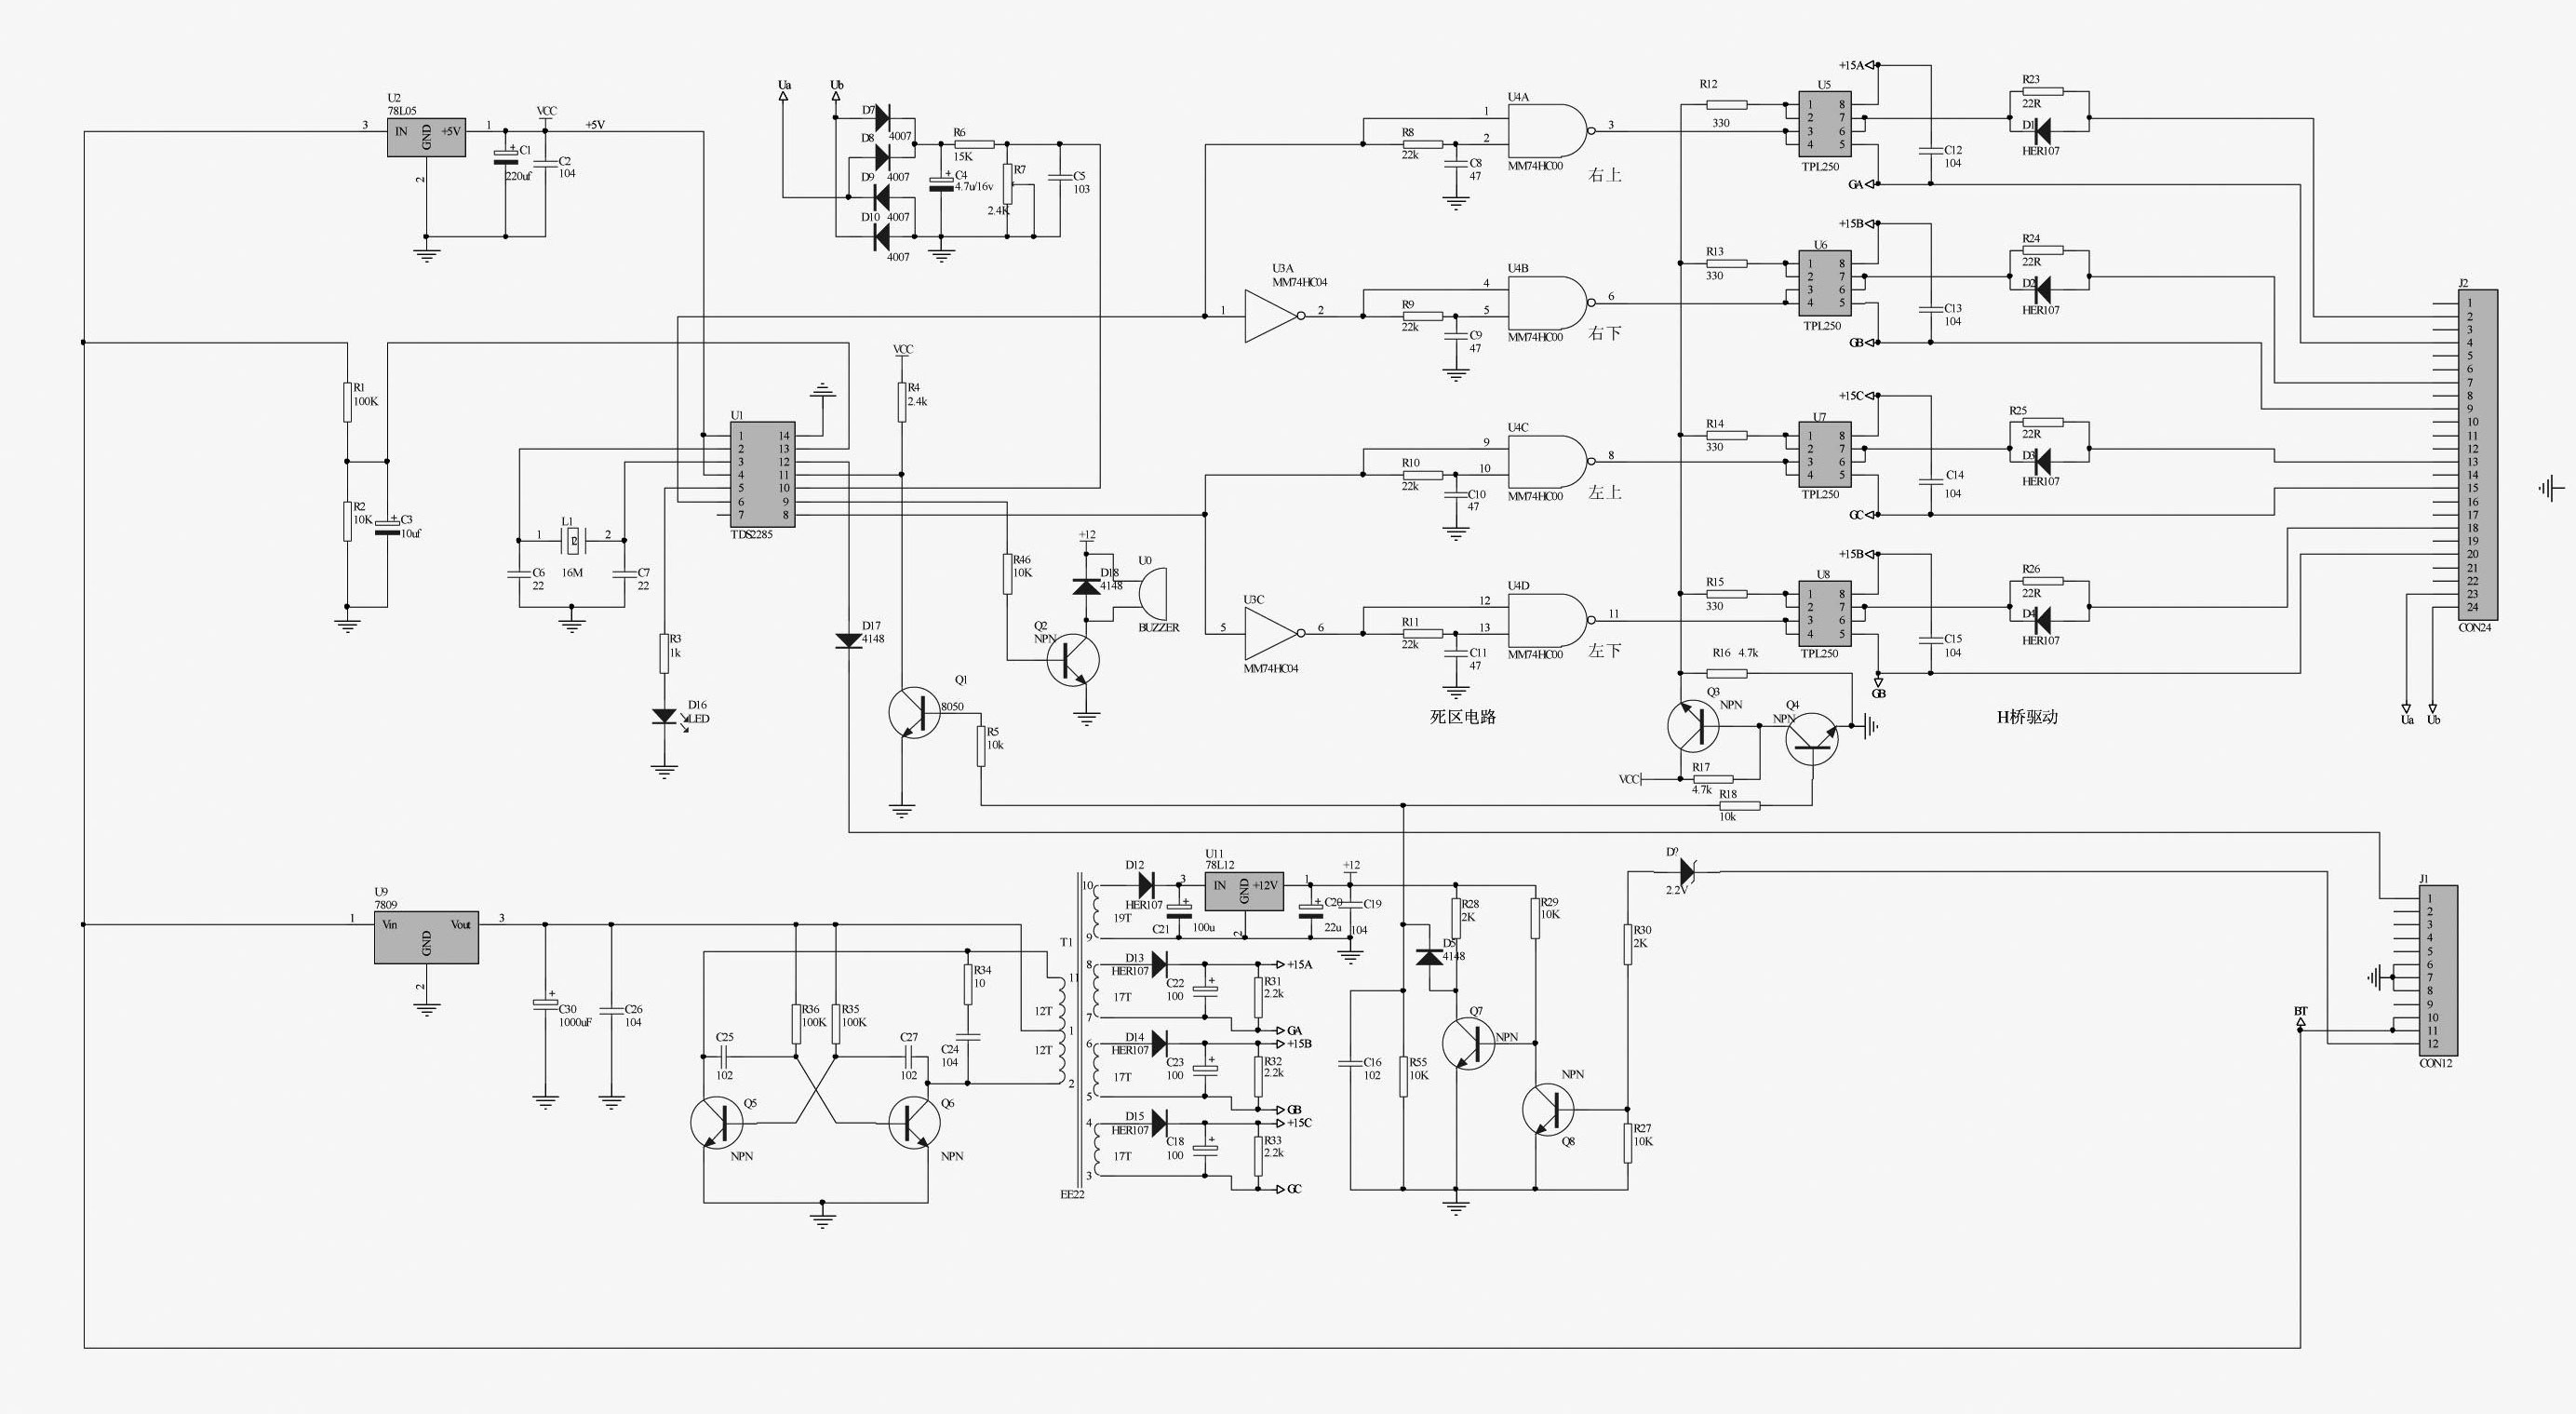 circuit diagram of an inverter 12 volt 1000 watt power inverter design process | gohz.com wiring diagram of home inverter #10